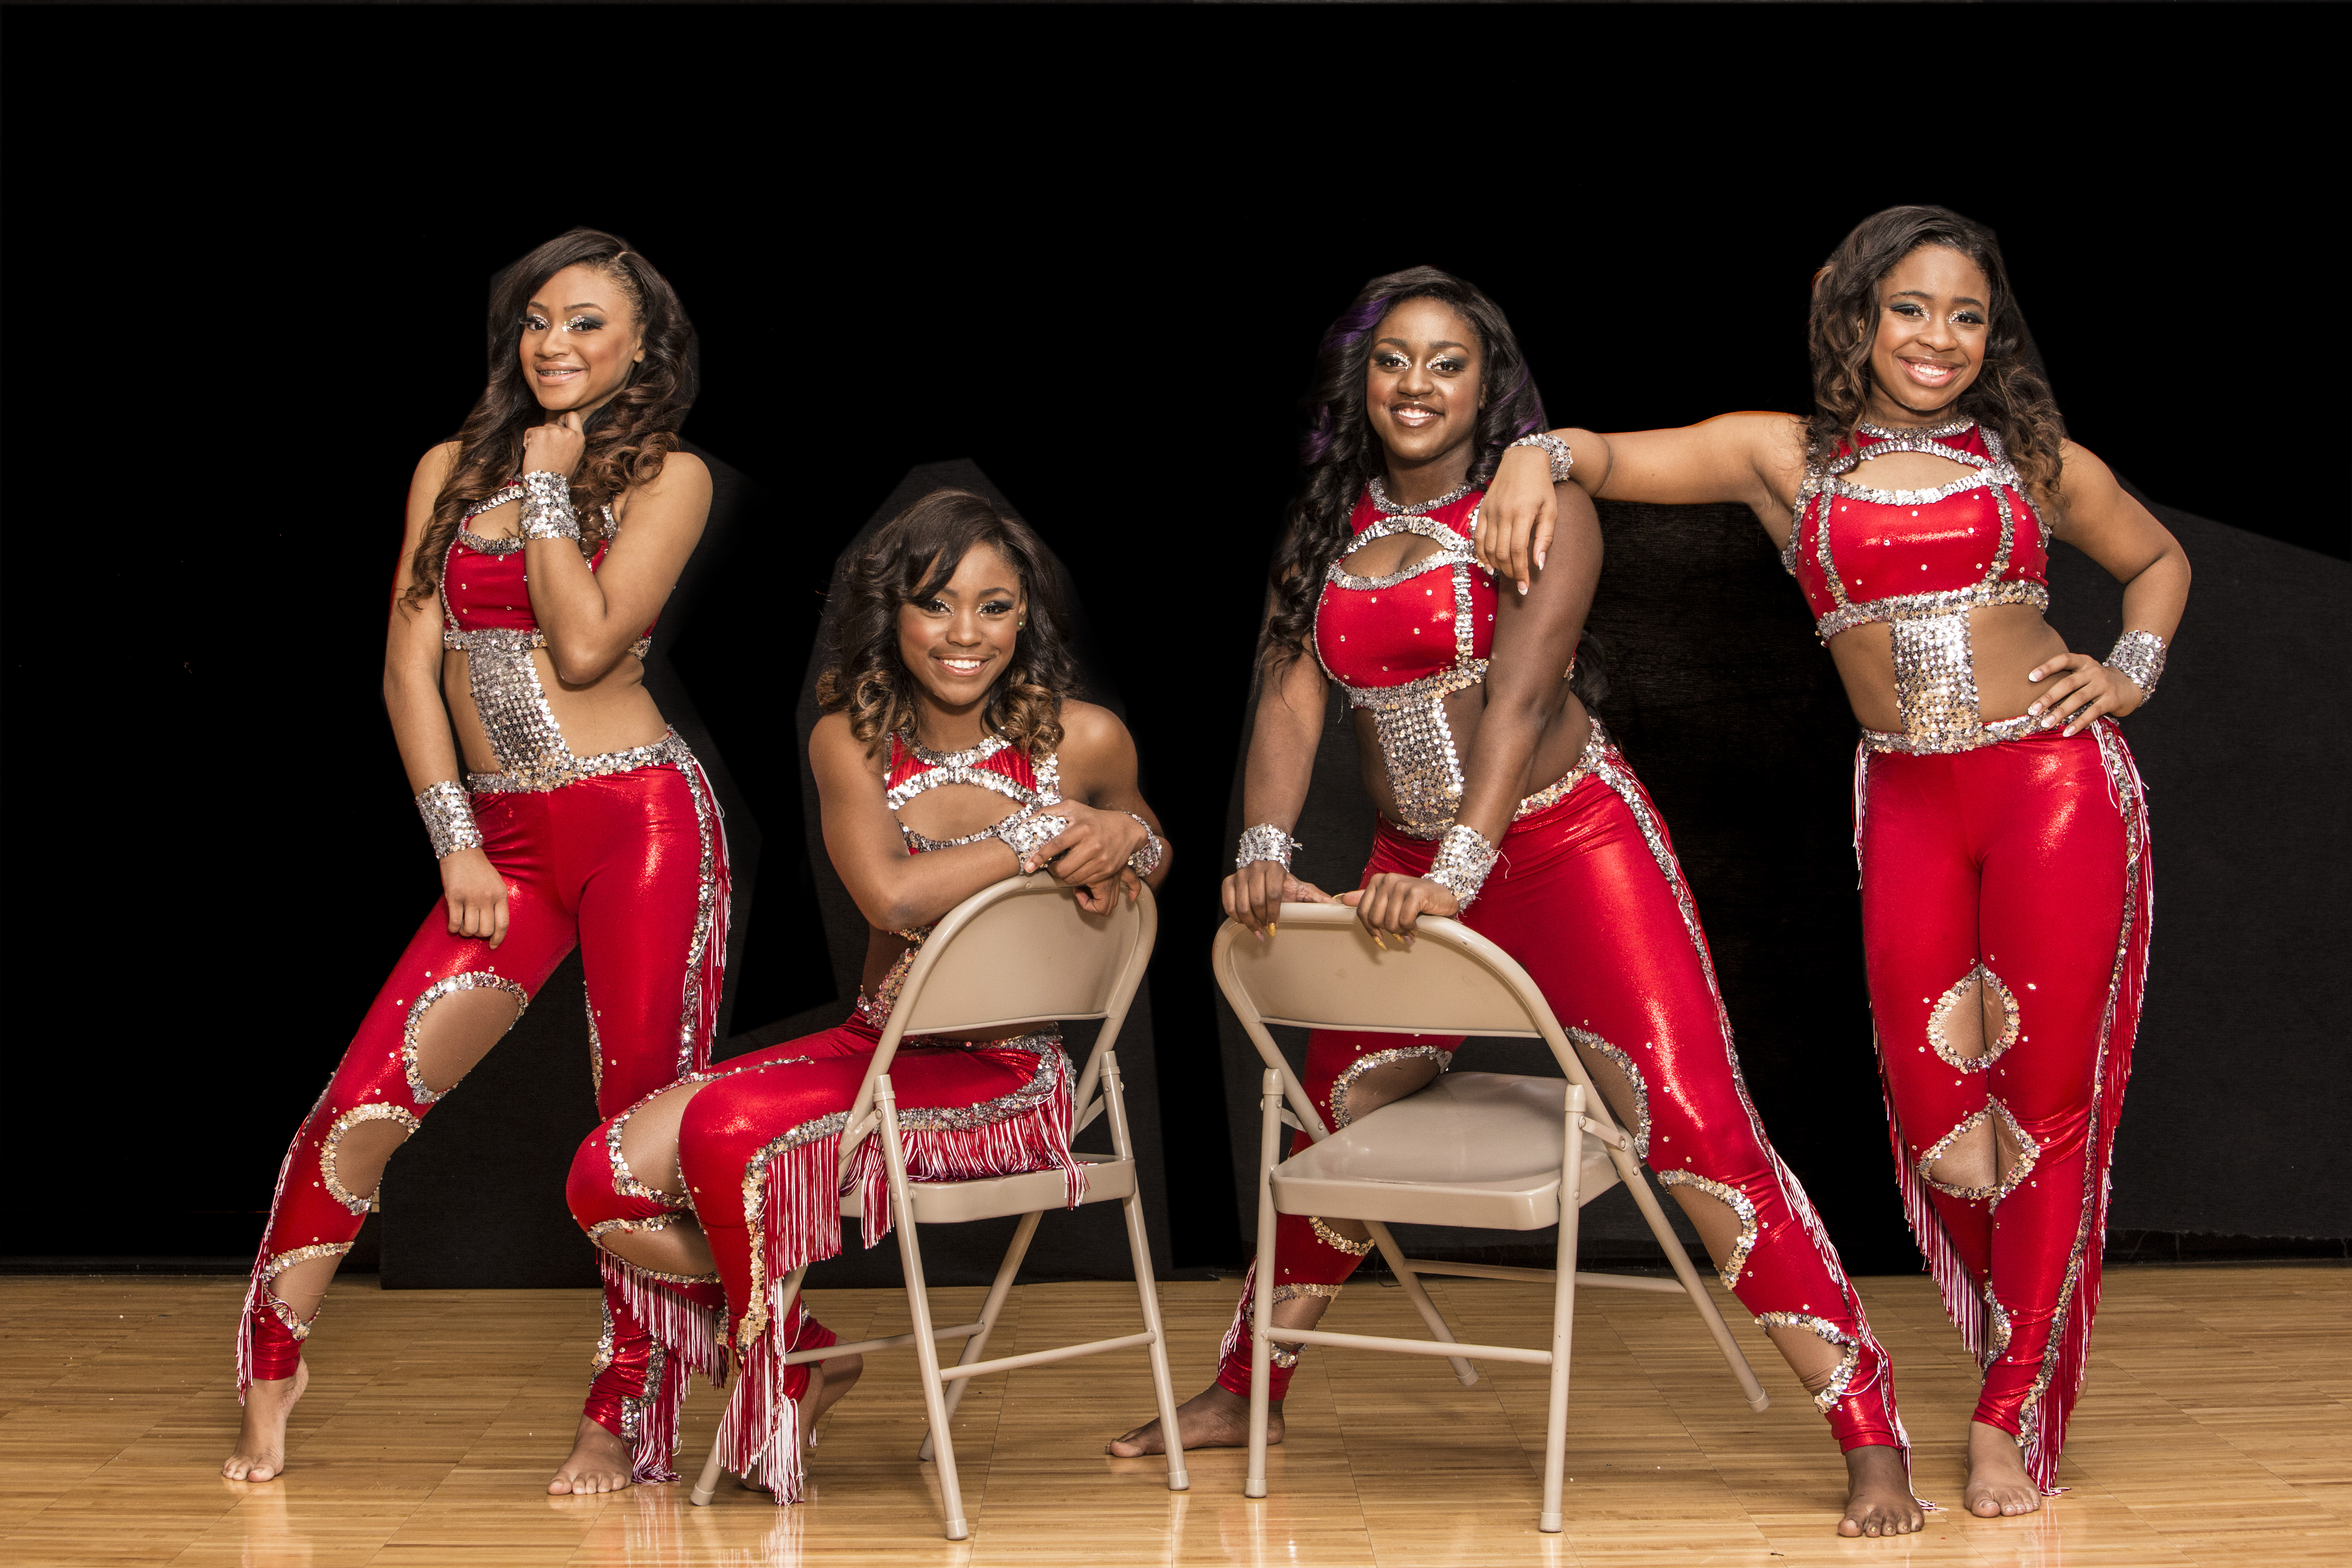 BRING IT Returns with 18 Million Viewers VMH Magazine 5760x3840